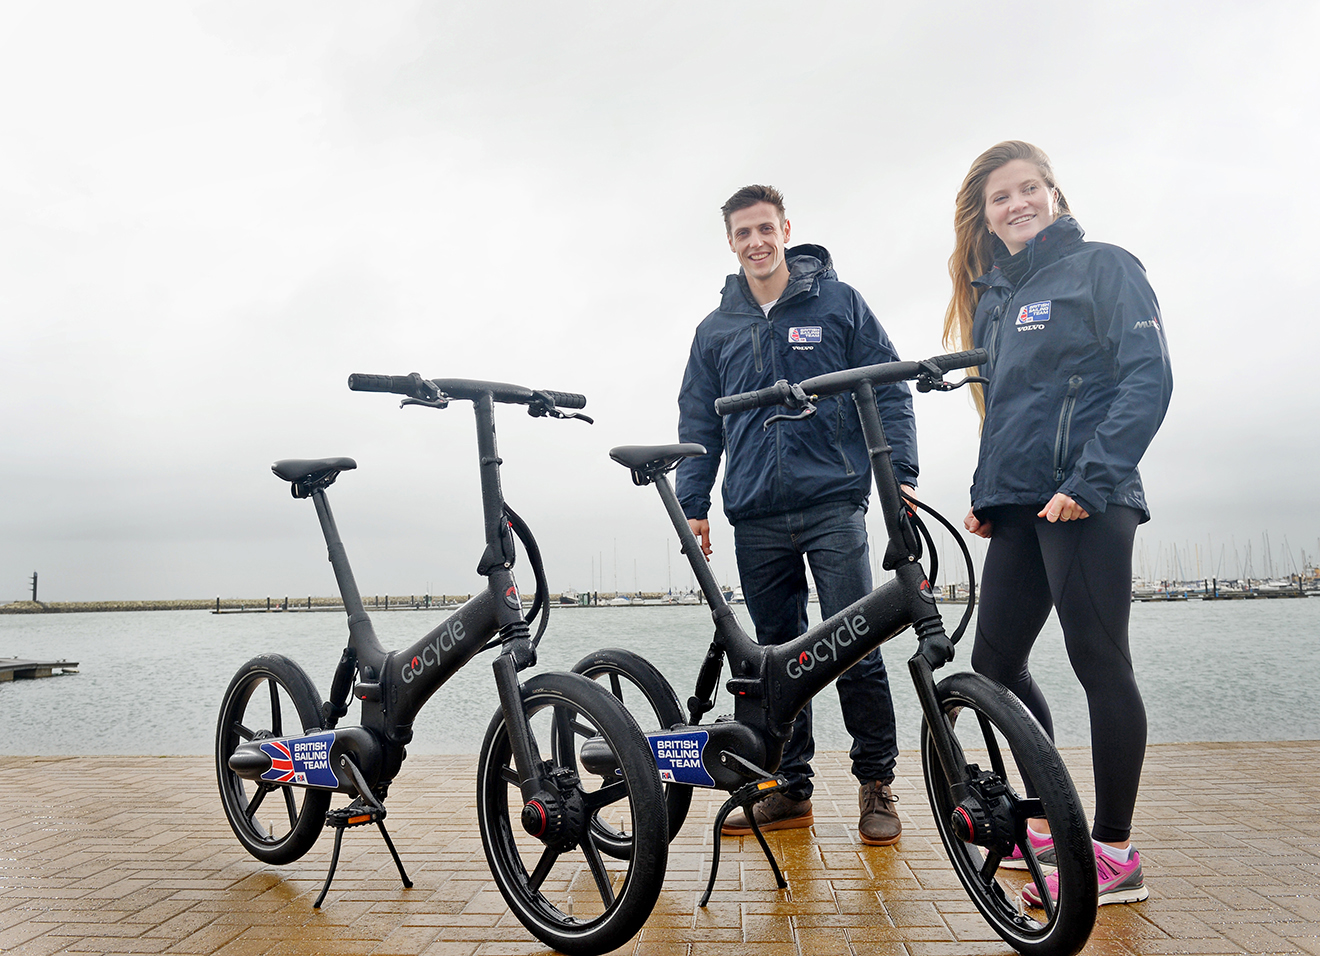 Gocycle and the British Sailing Team have teamed up ahead of Tokyo 2020.